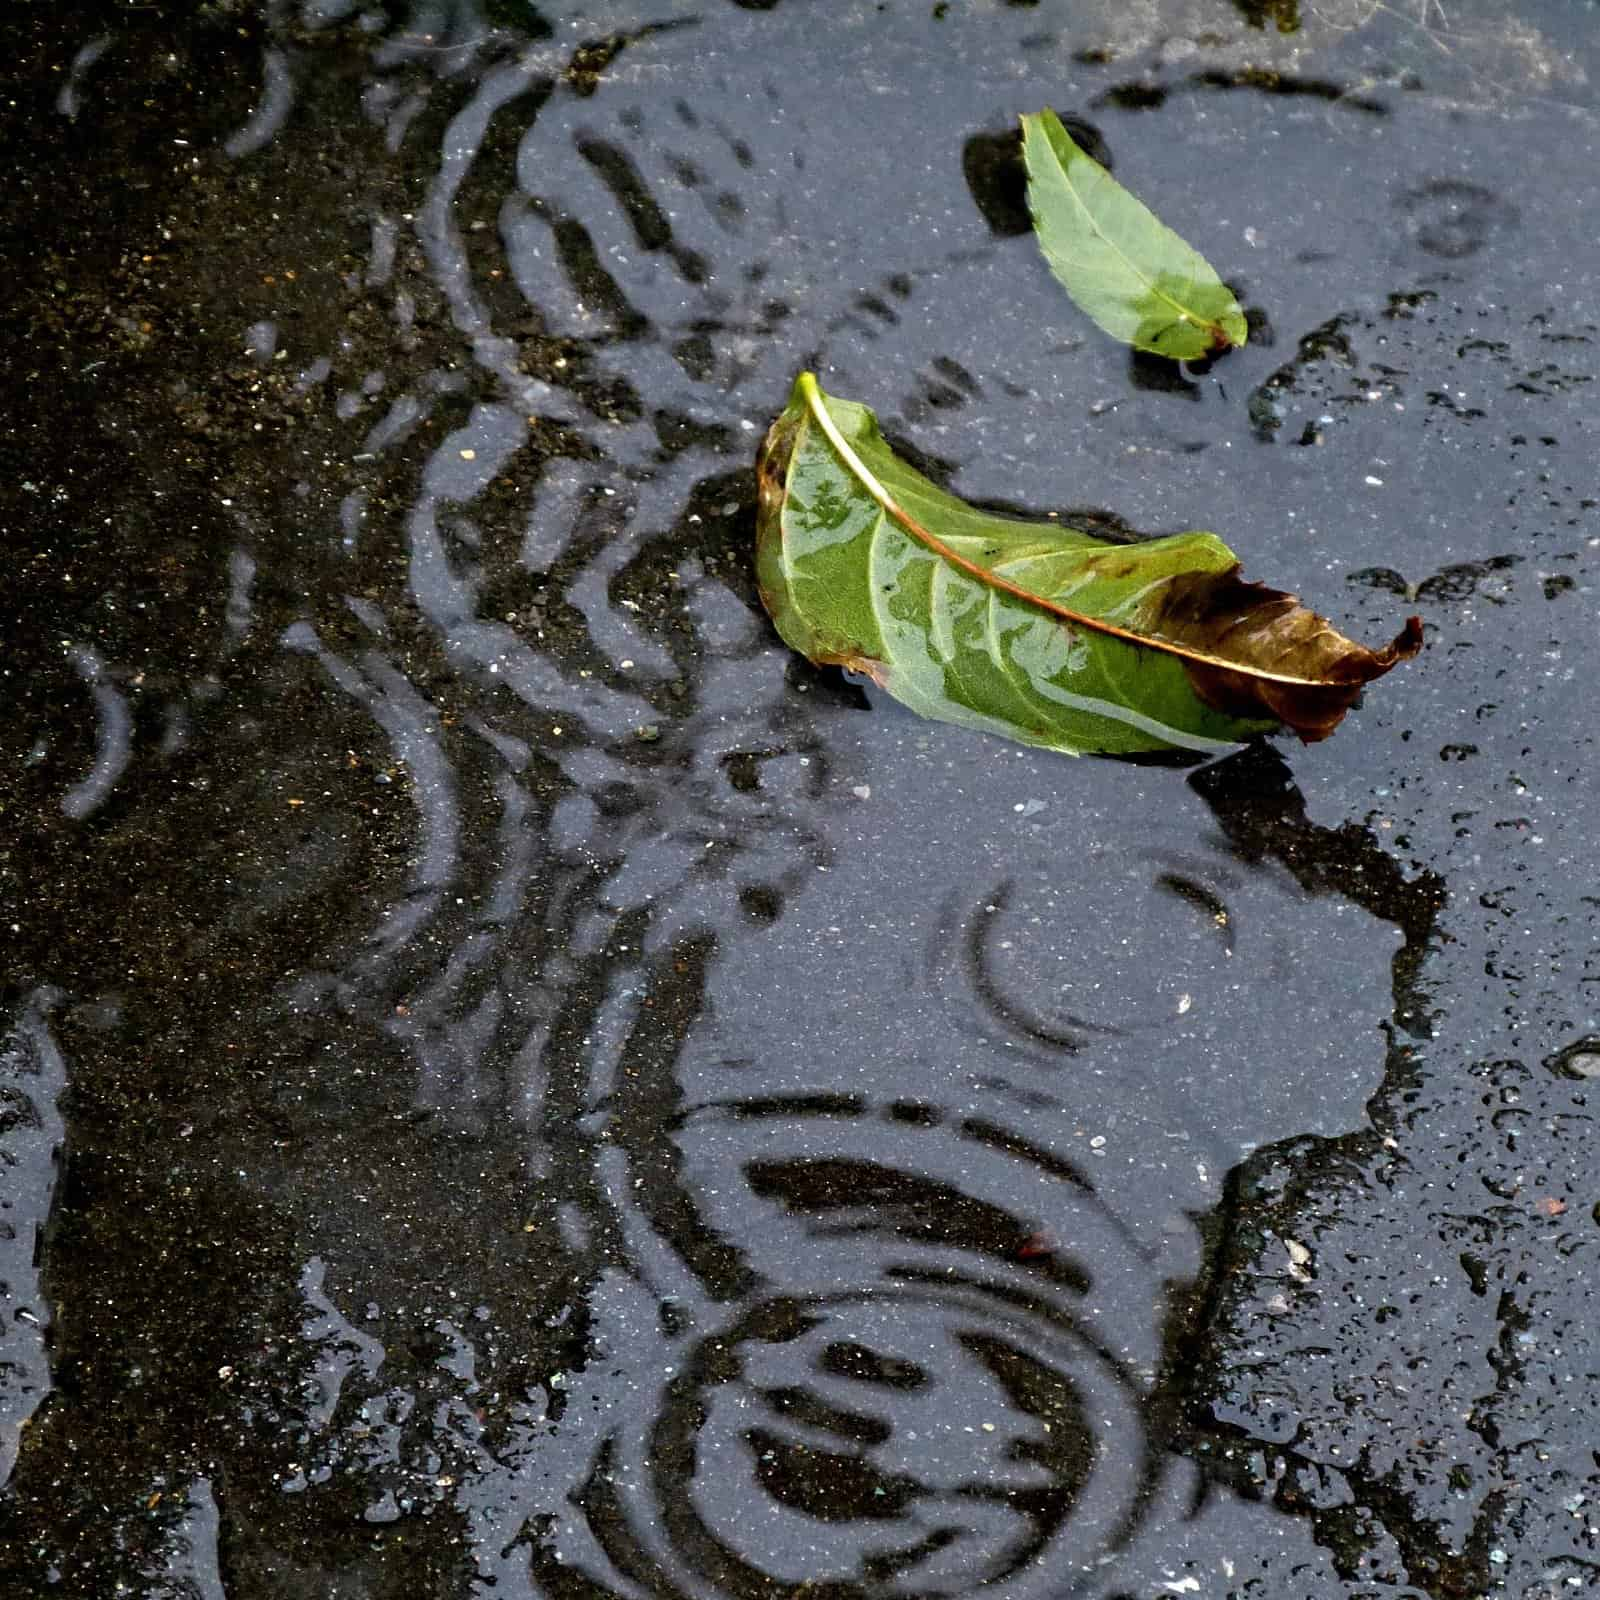 Close-up photo of raindrops in a puddle